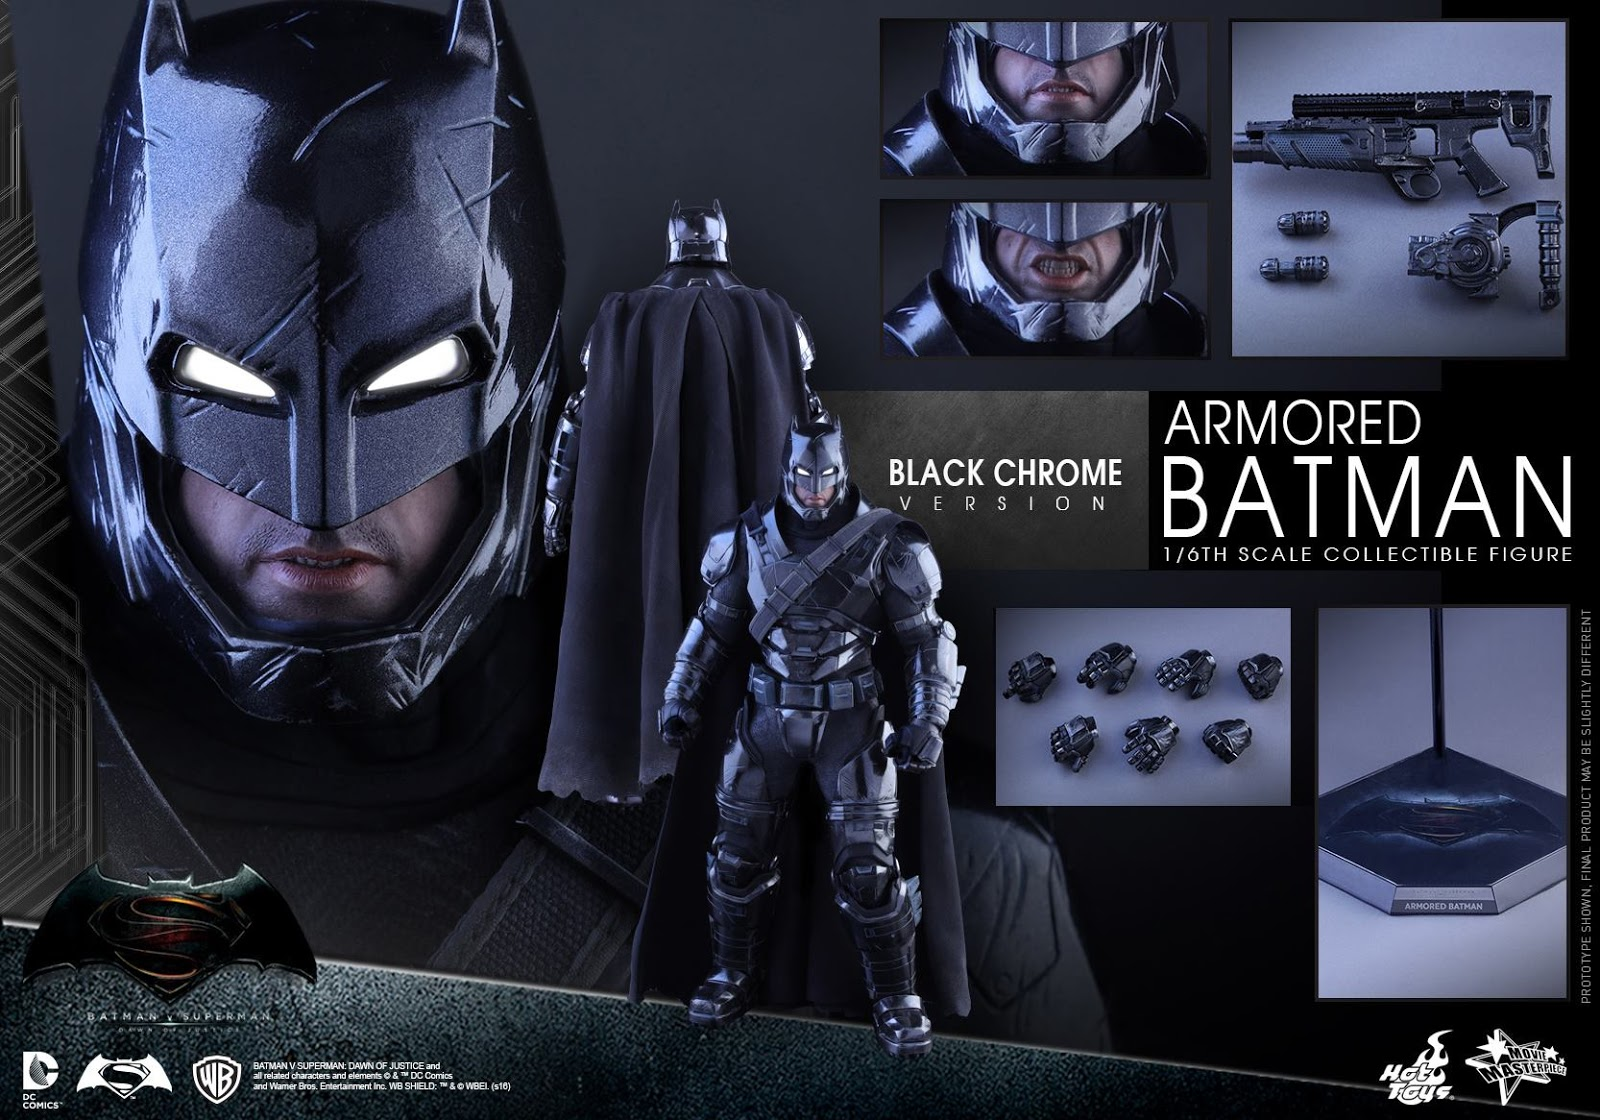 Hot Toys Announces Black Chrome Batman Figure